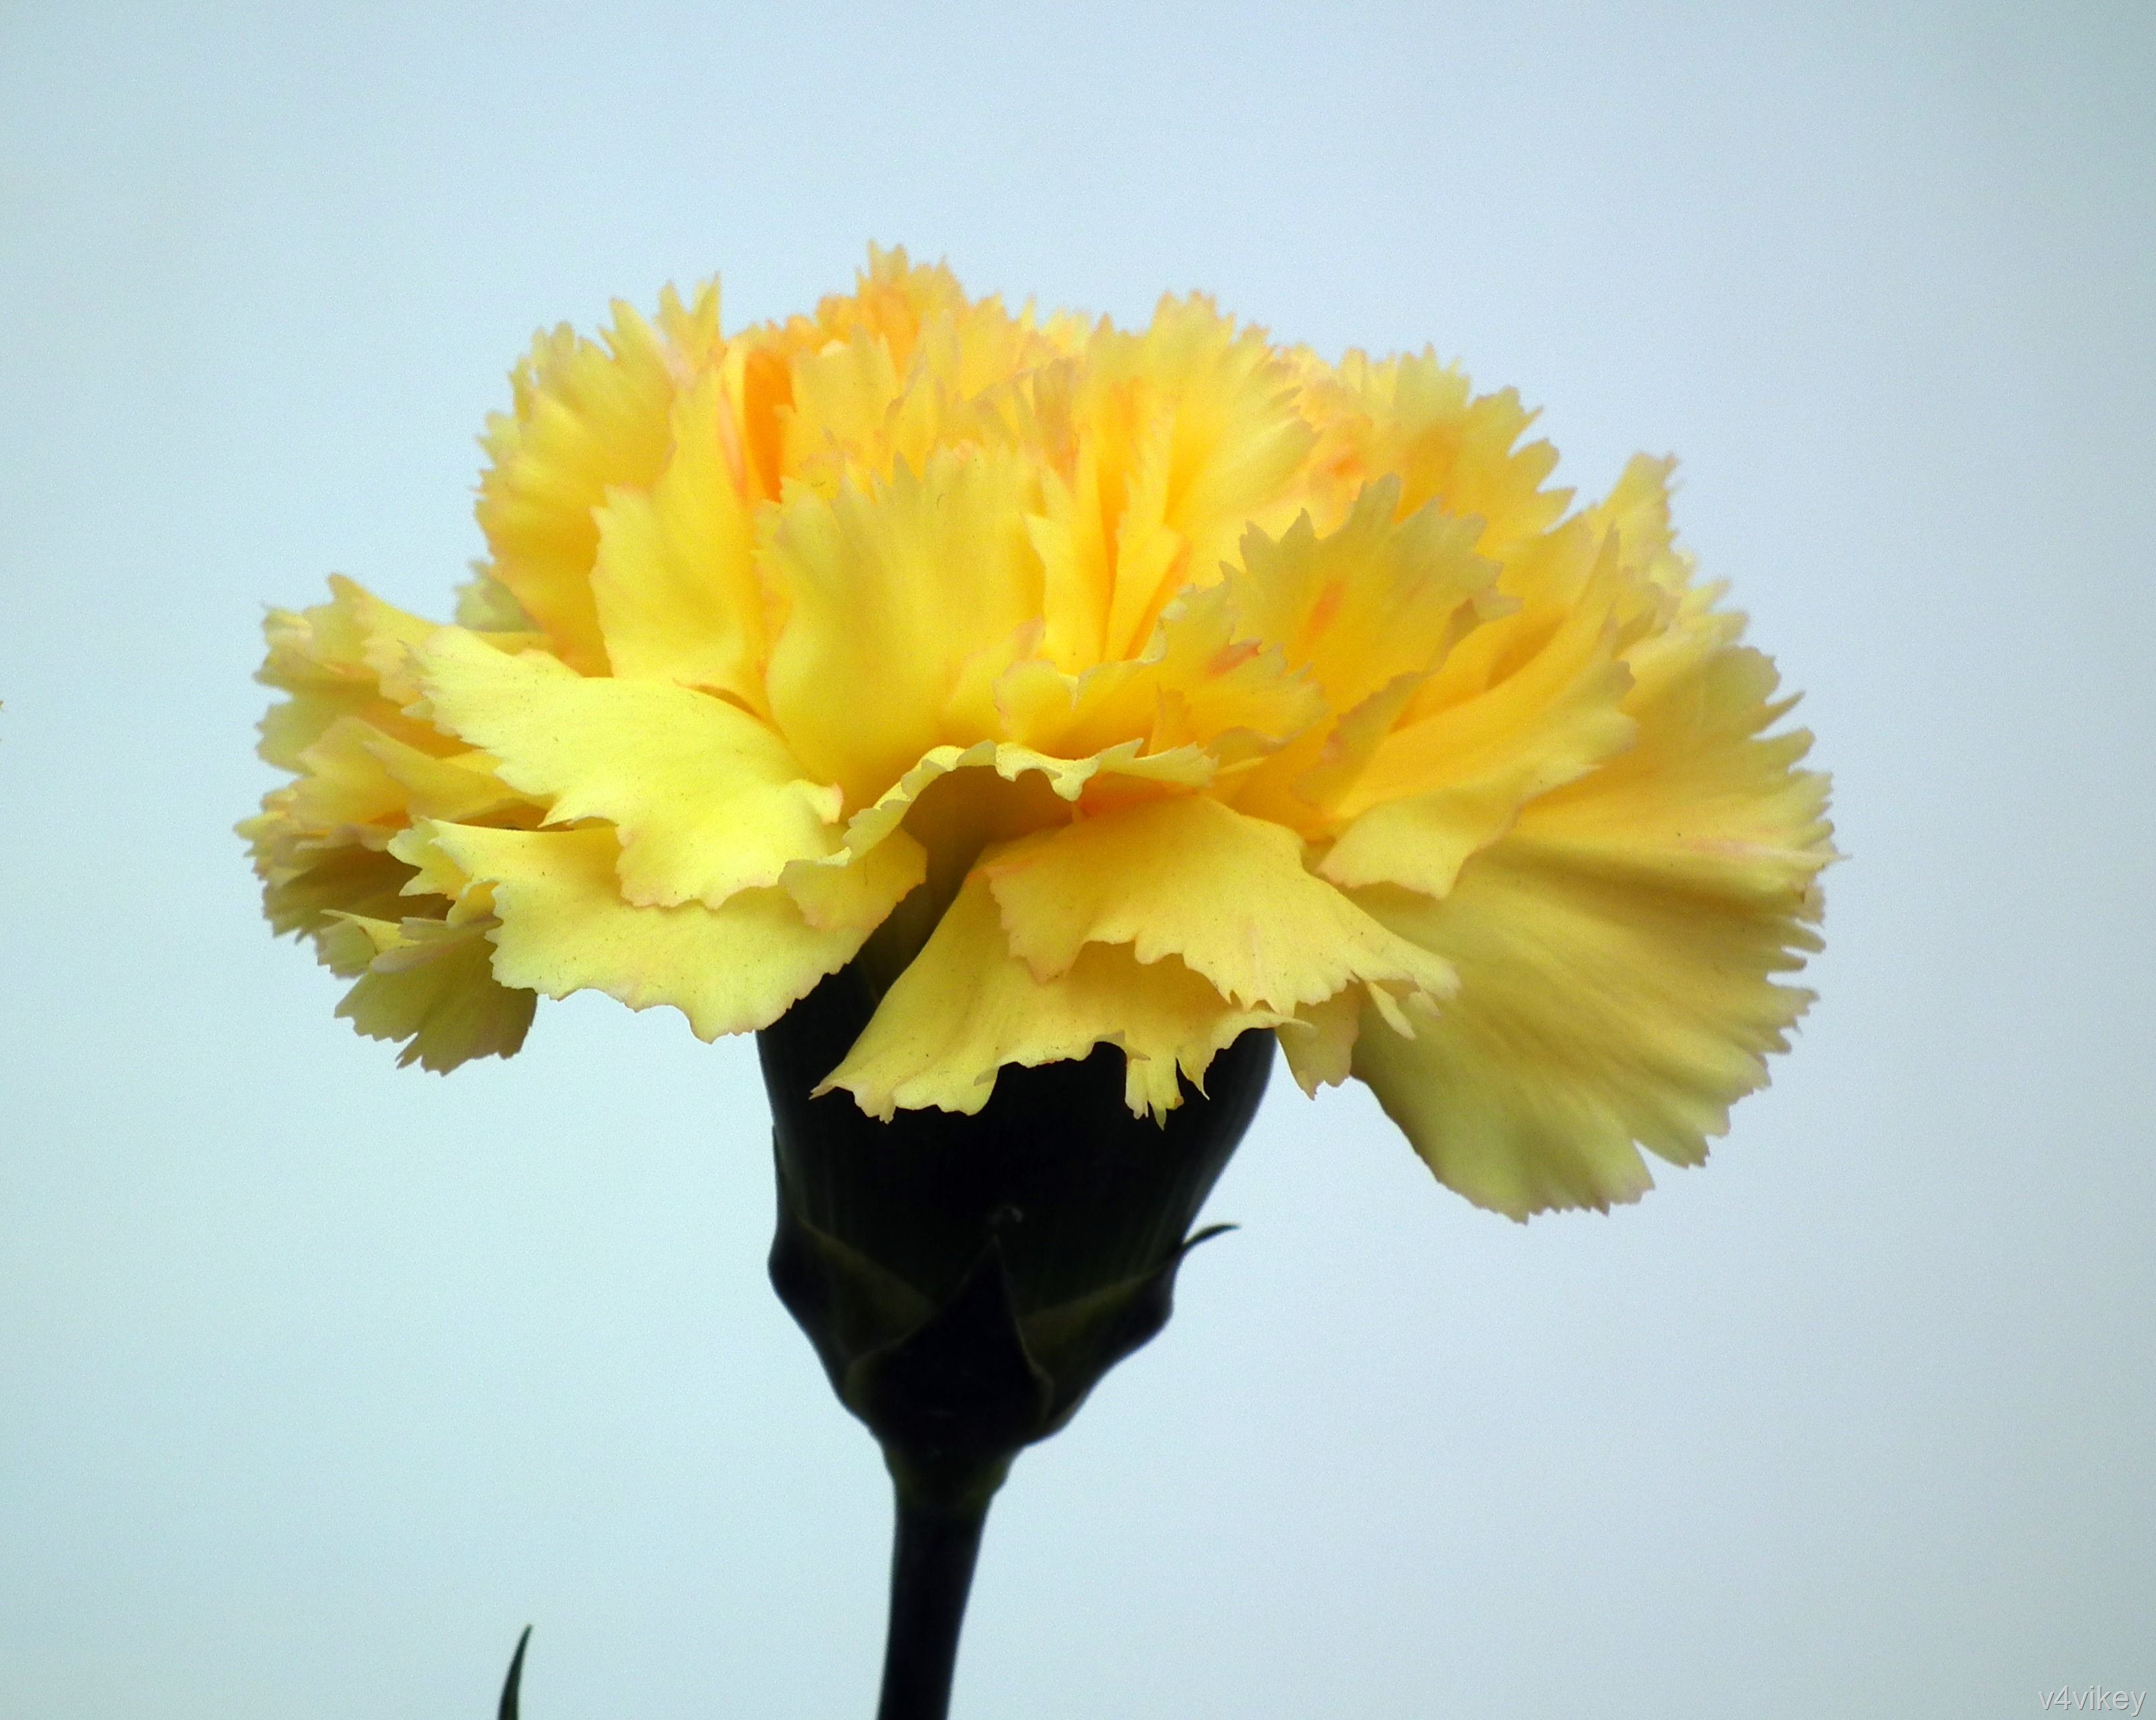 Yellow carnations yellow carnation flower wallpaper tadka yellow carnation flower yellow carnation flower symbolic of disappointment and dejection biocorpaavc